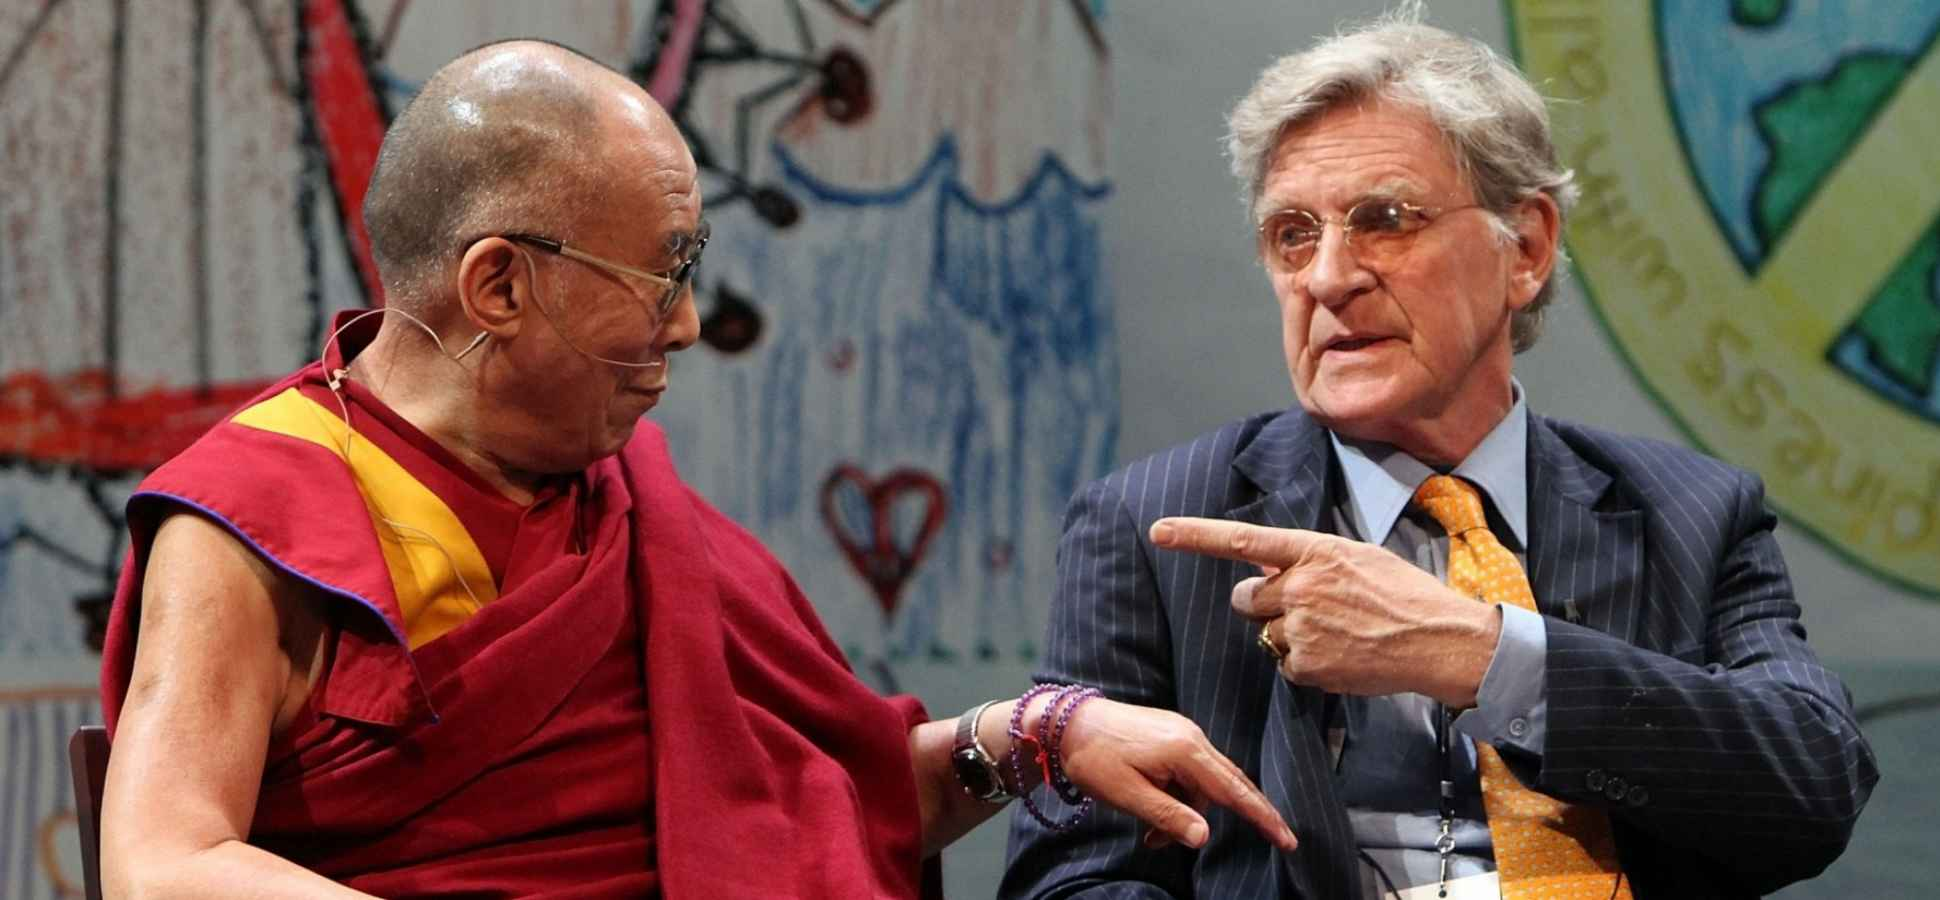 The Dalai Lama's Right-Hand Man Has This to Say About the Power of Business